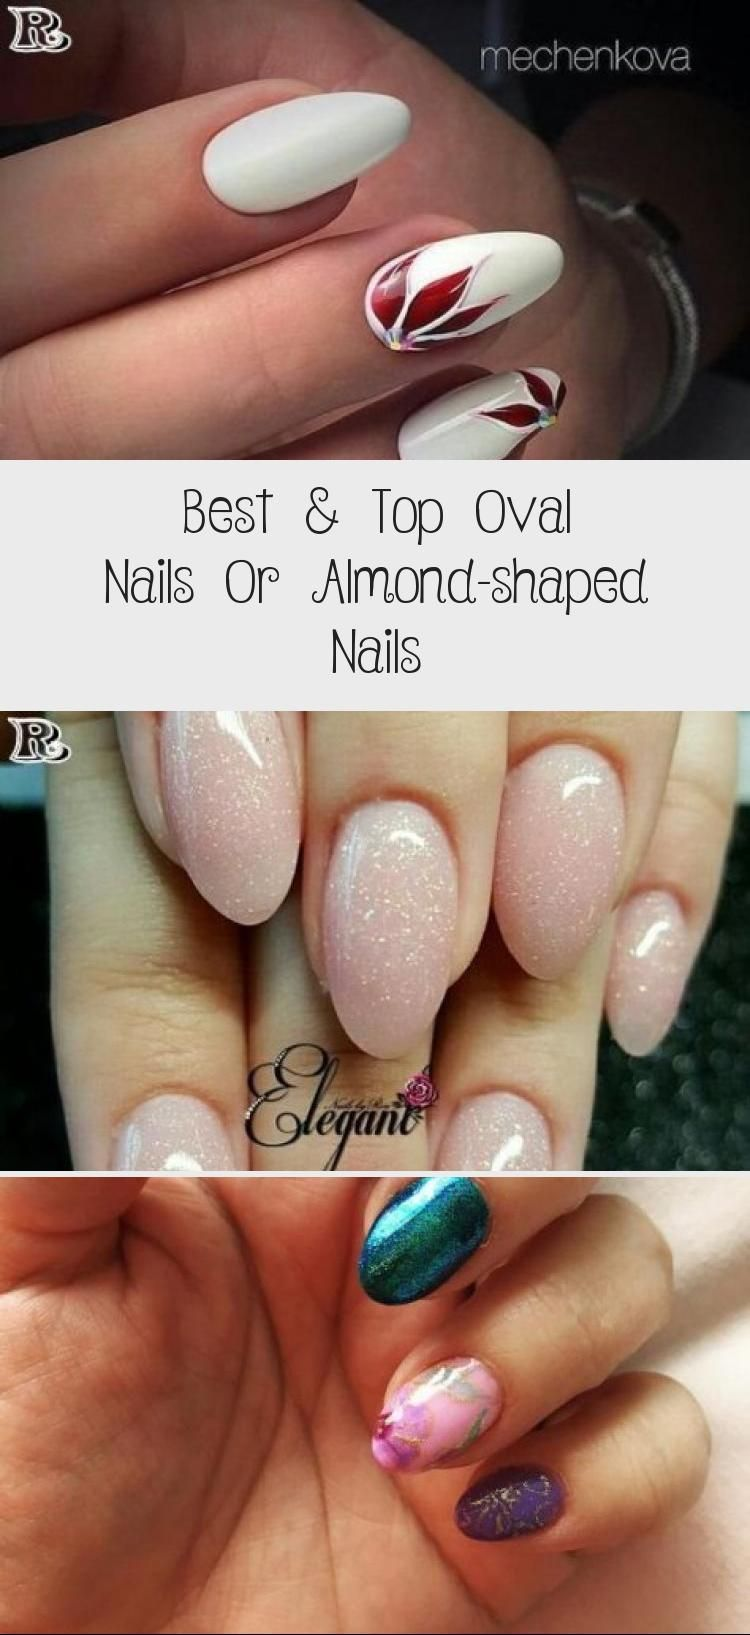 Best  Top Oval Nails Or Almondshaped Nails  Nail Art Desing  Best  Top Oval Nails or almondshaped nails  Reny styles